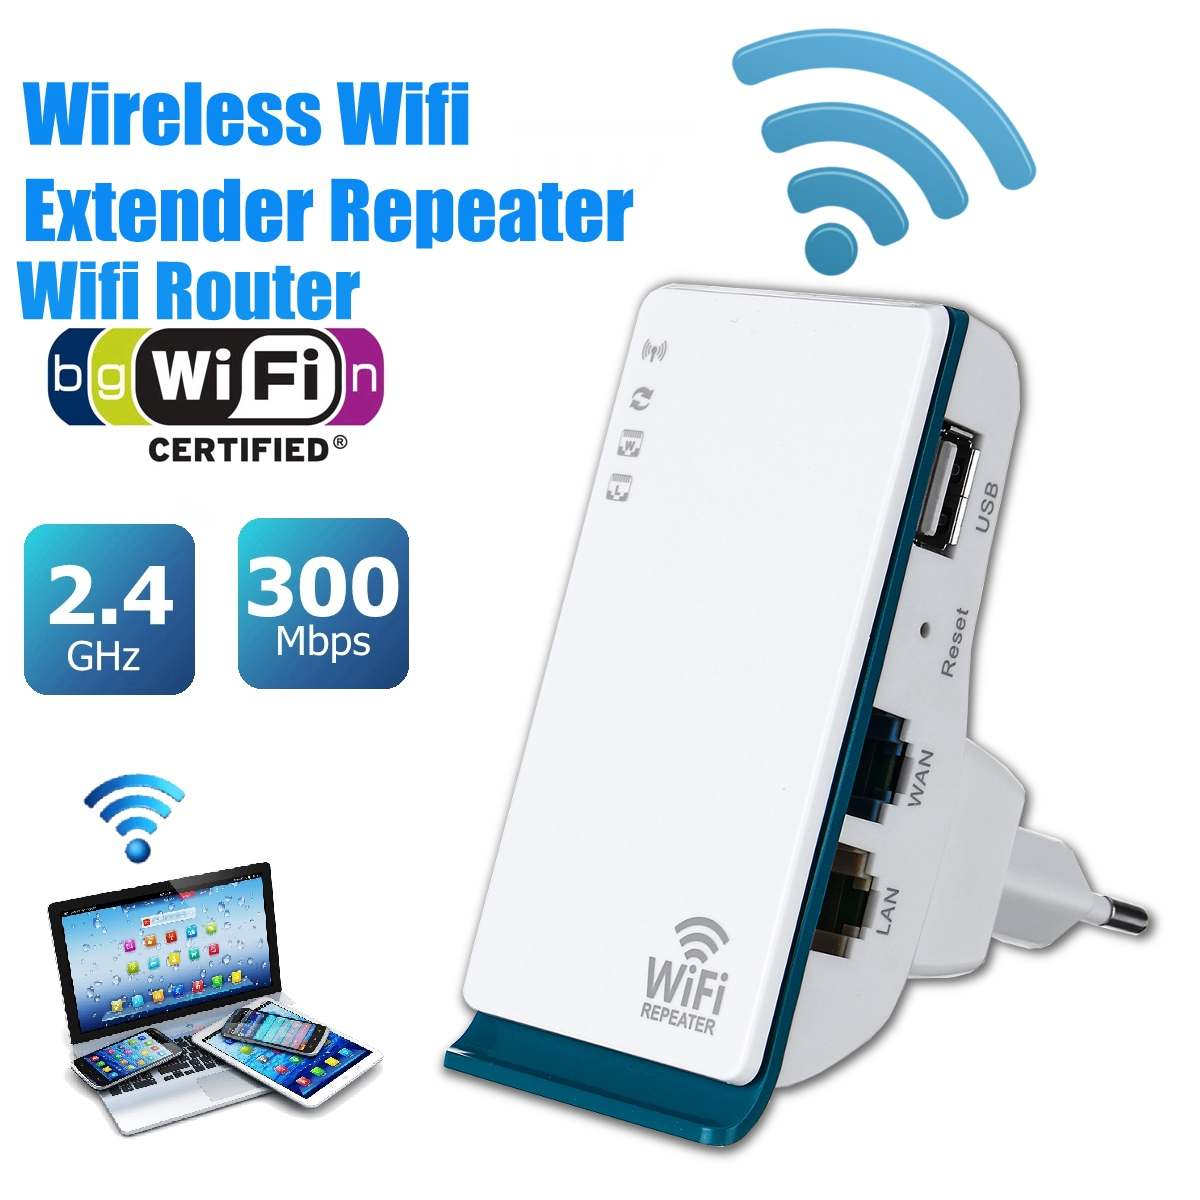 LEORY 300Mbps Wireless Wifi Repeater 2.4G Router Signal Booster Extender Hotspot WiFi signal amplifier